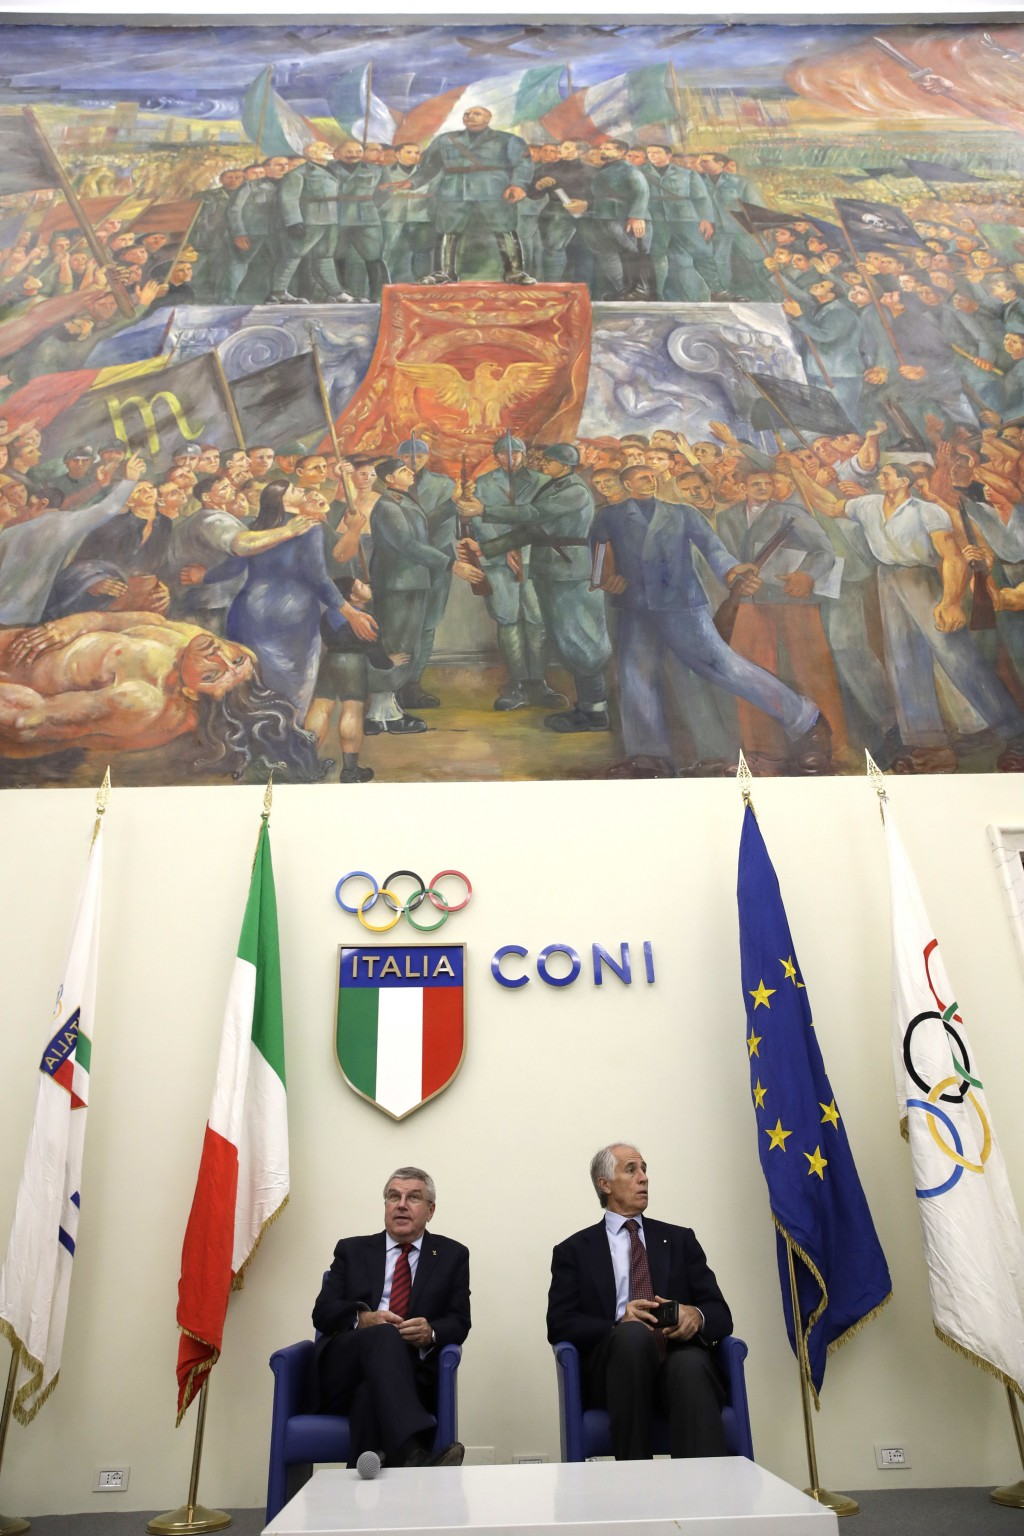 International Olympic Committee President Thomas Bach, left, and Italian Olympic Committee President Giovanni Malago', attend a press conference, in R